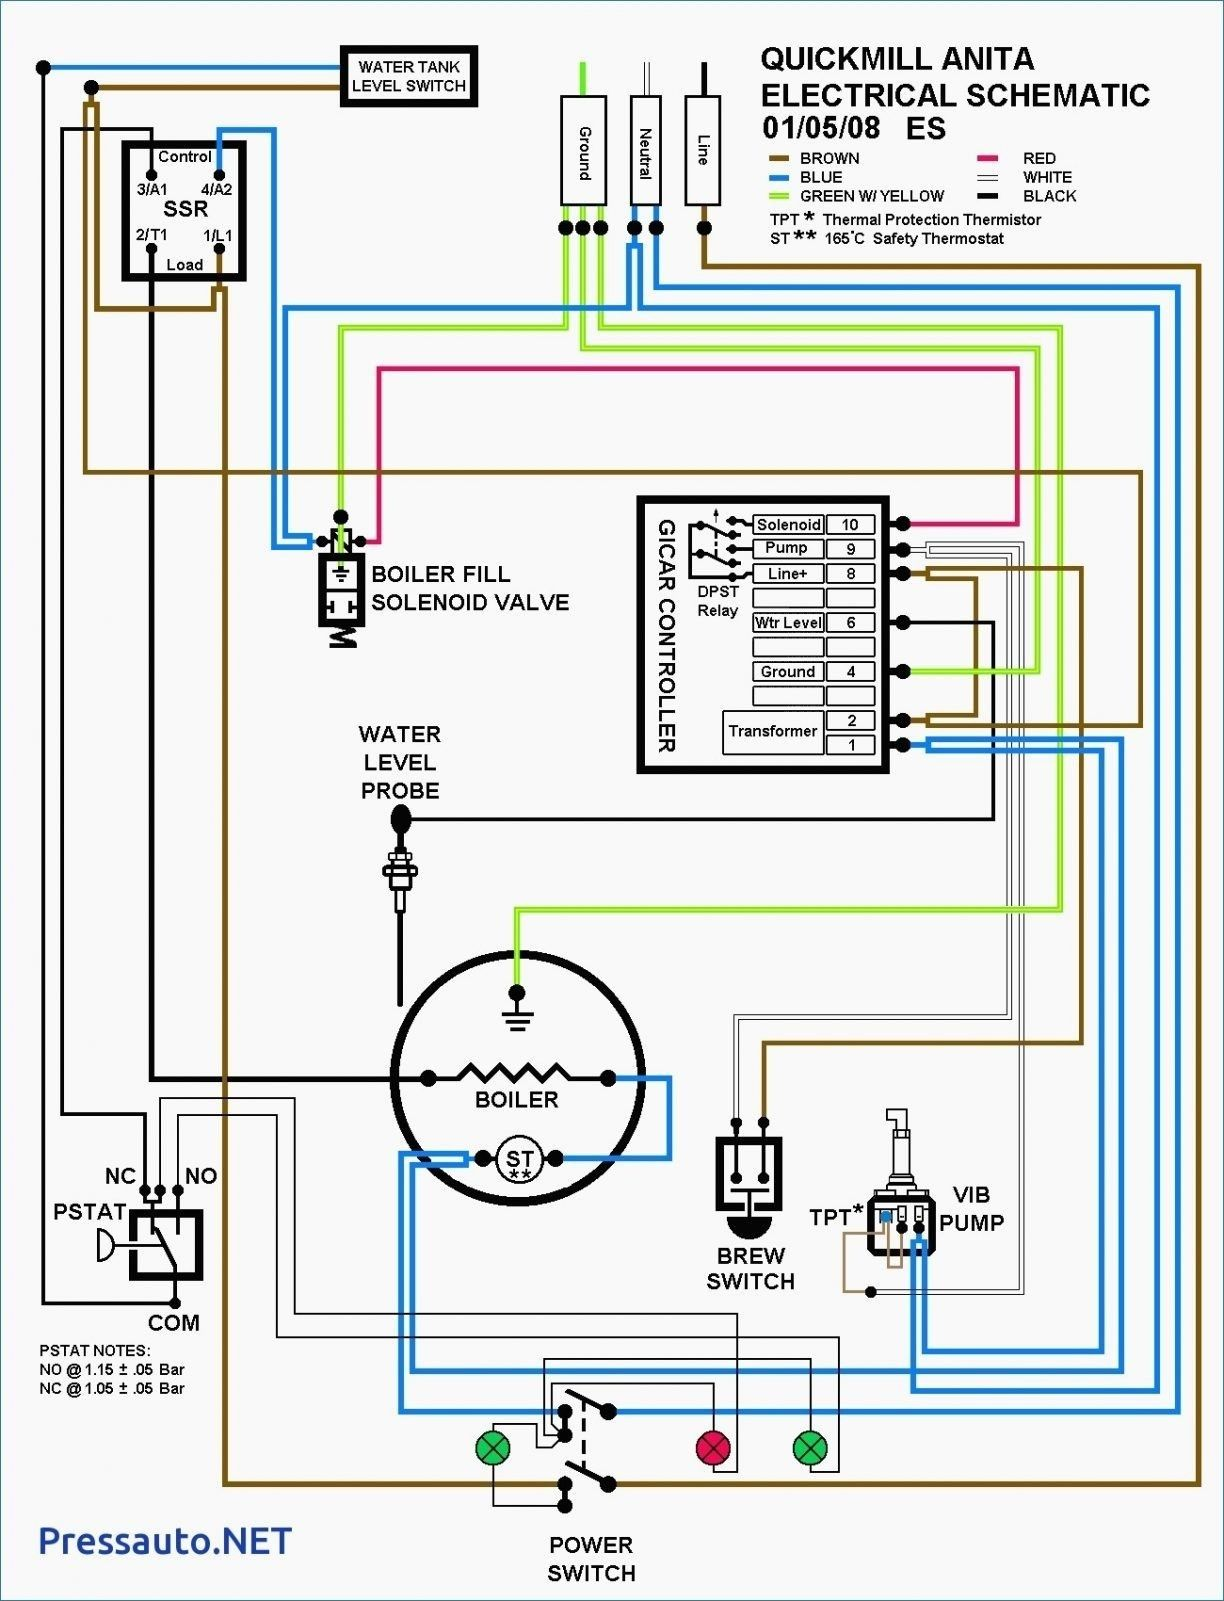 Luxury Wiring Diagram Combi Boiler Diagrams Digramssample Diagramimages Wiringdiagramsample Wiringdiagram Heating Systems Boiler Thermal Protectant